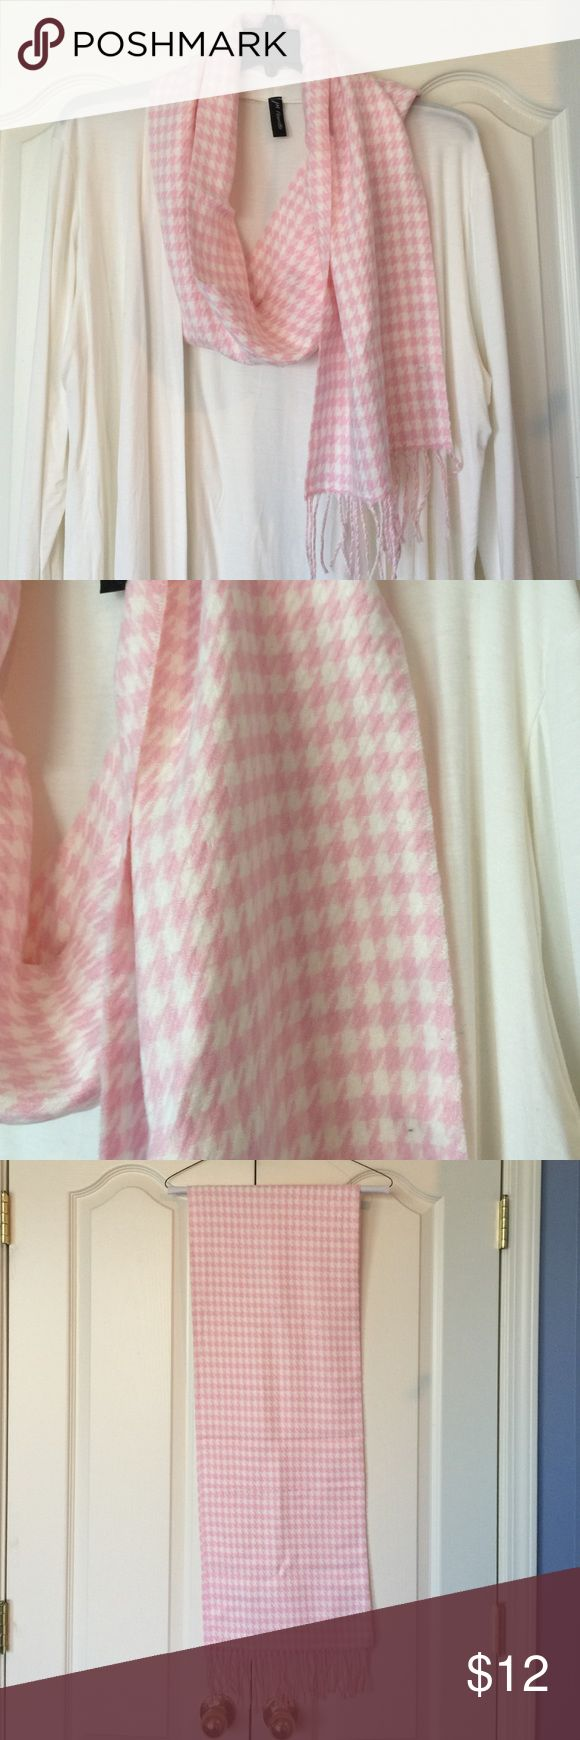 NWOT   Pink and ivory houndstooth scarf Pink and ivory houndstooth scarf. Fabric content and laundry care shown in picture 4. Italy design Accessories Scarves & Wraps